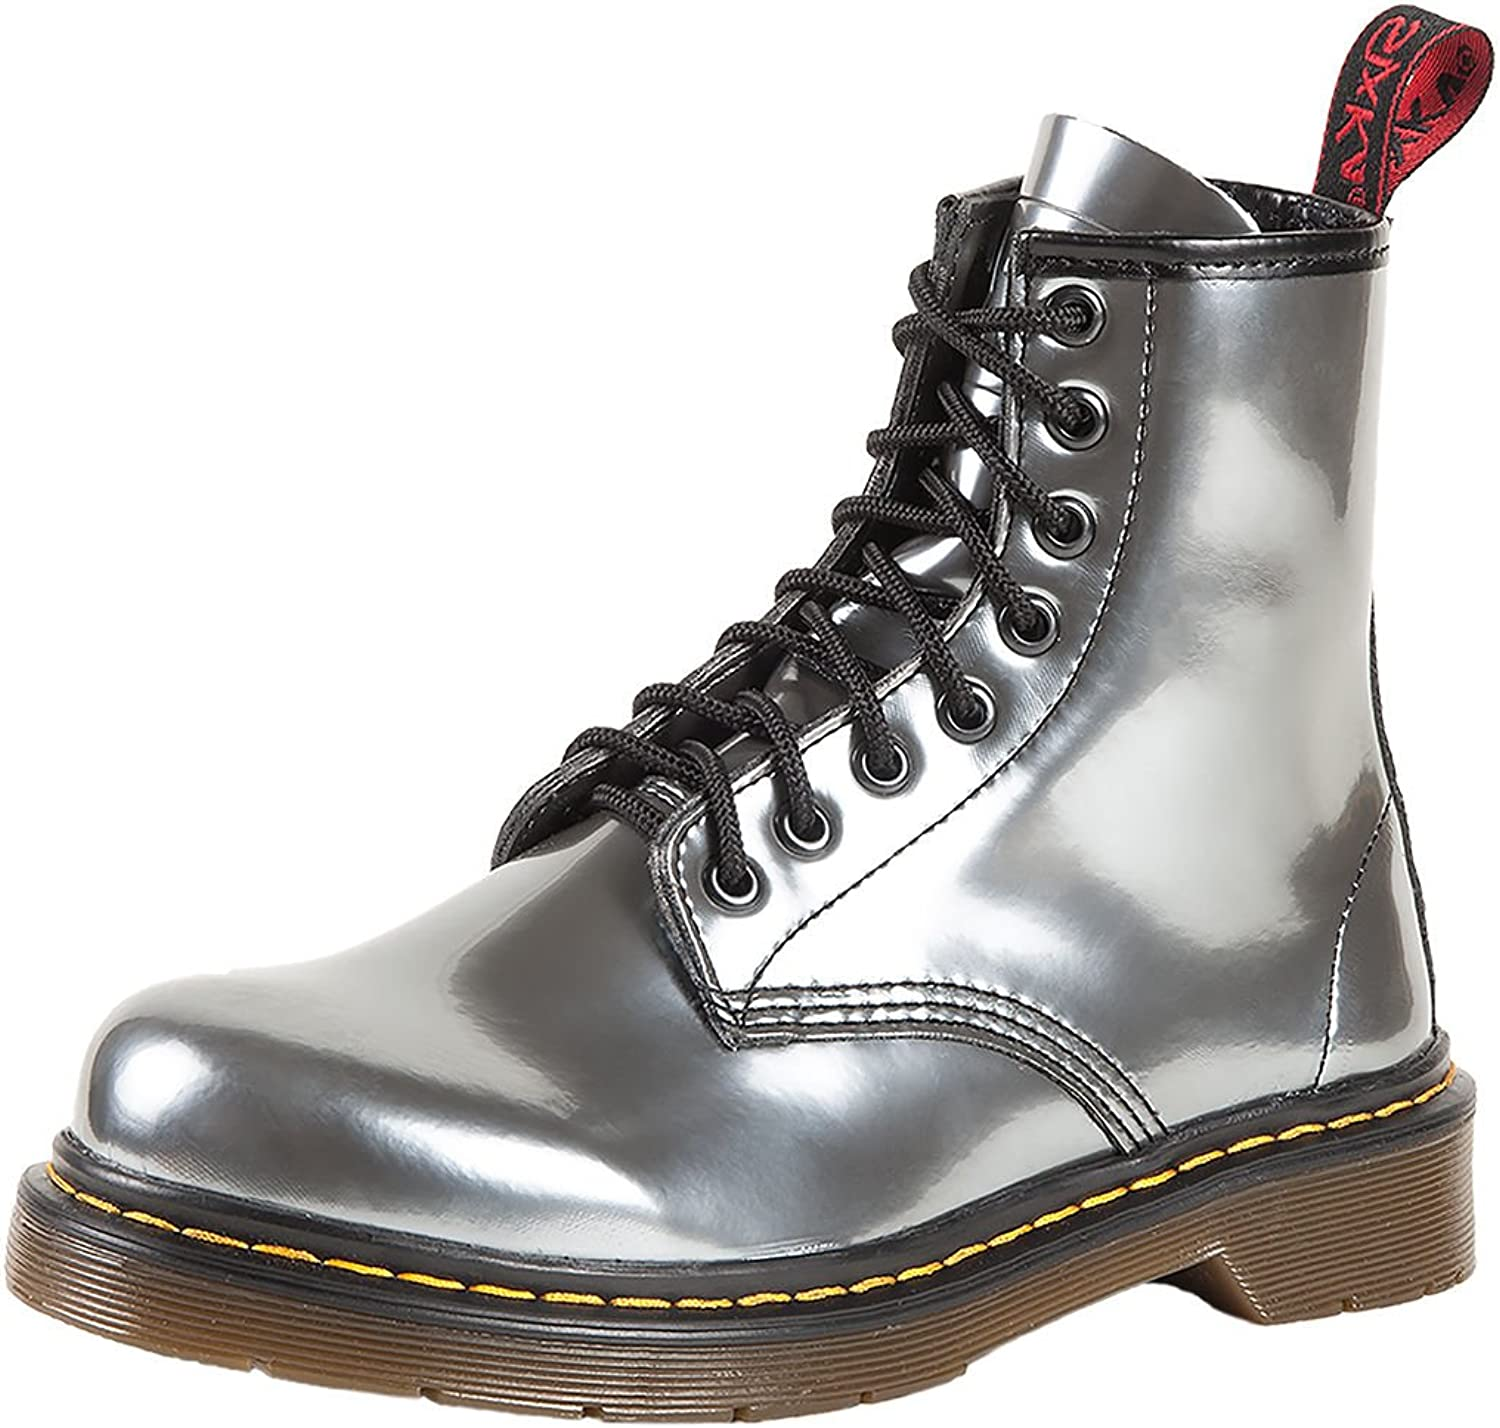 SK7 Women's Hot Stylish Coventry Gloss Leather Fashion Ankle Boots Silver Arrow - 10